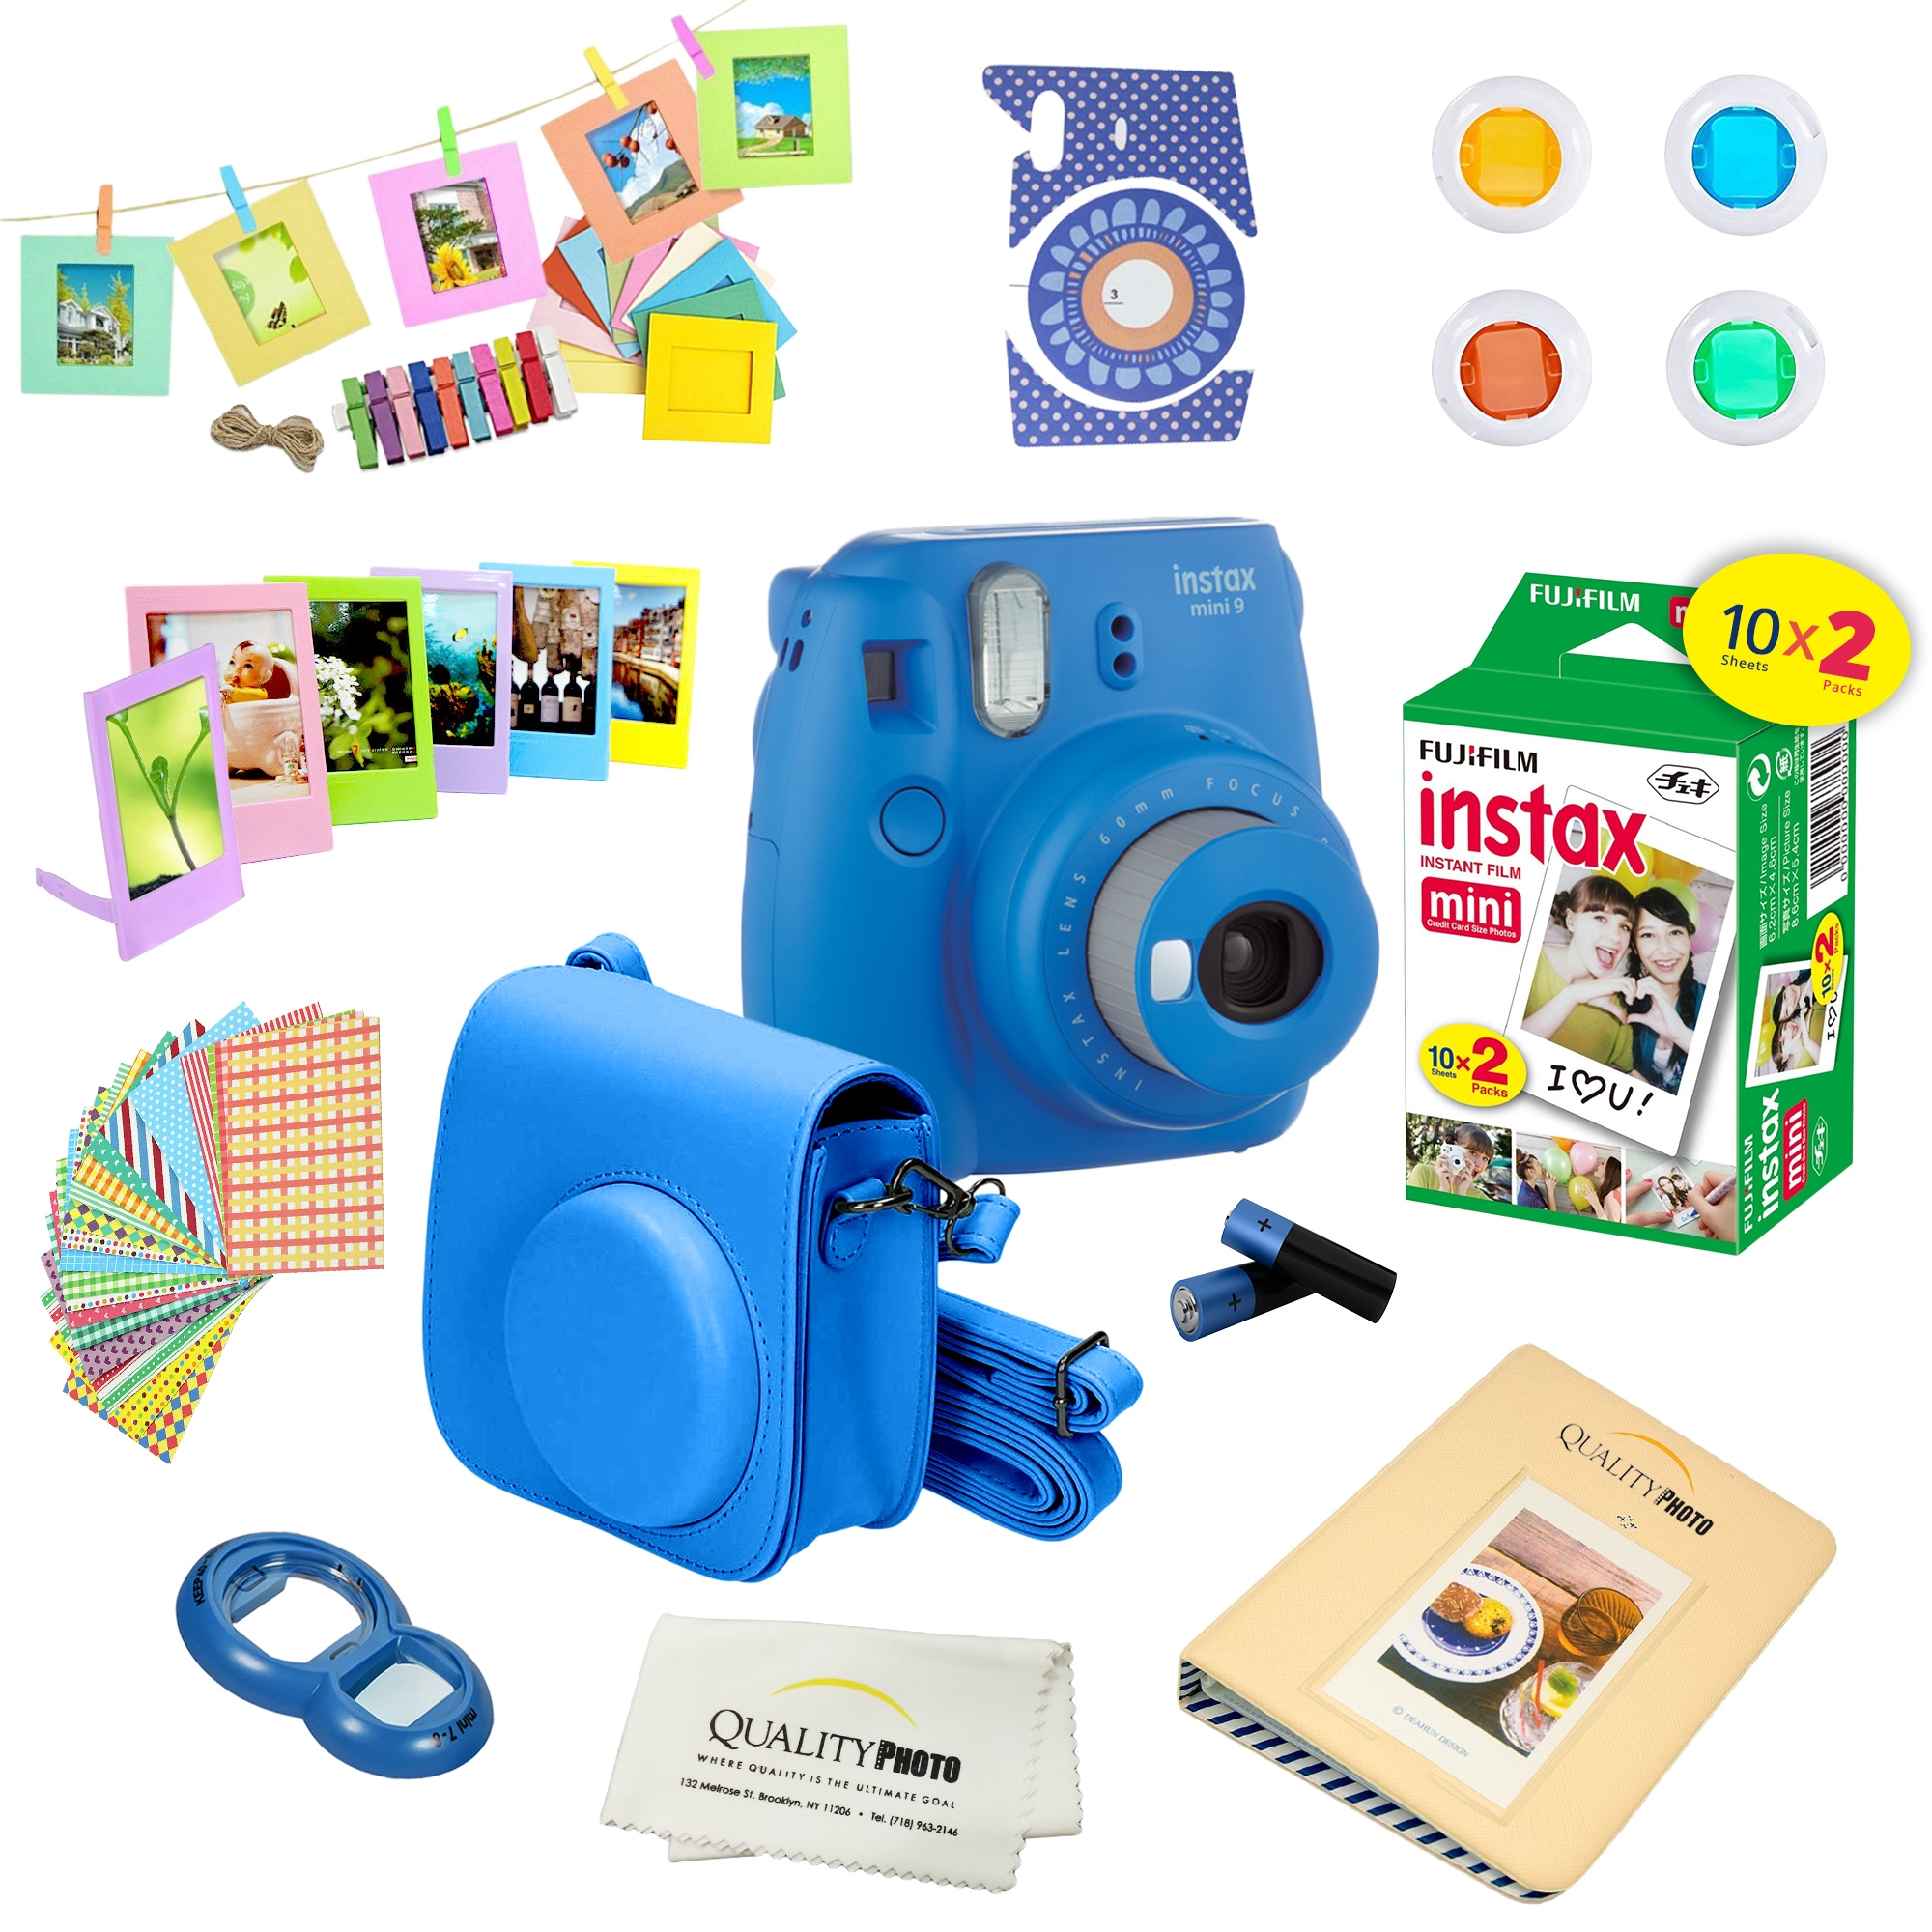 Fujifilm Instax Mini 9 Camera - Cobalt Blue + Fujifilm Instax mini 9 Instant Films 2-Pack = 20 Sheets + A 15 PC Massive Deluxe Accessory Kit Bundle for Fujifilm instax mini 9 Instant Camera